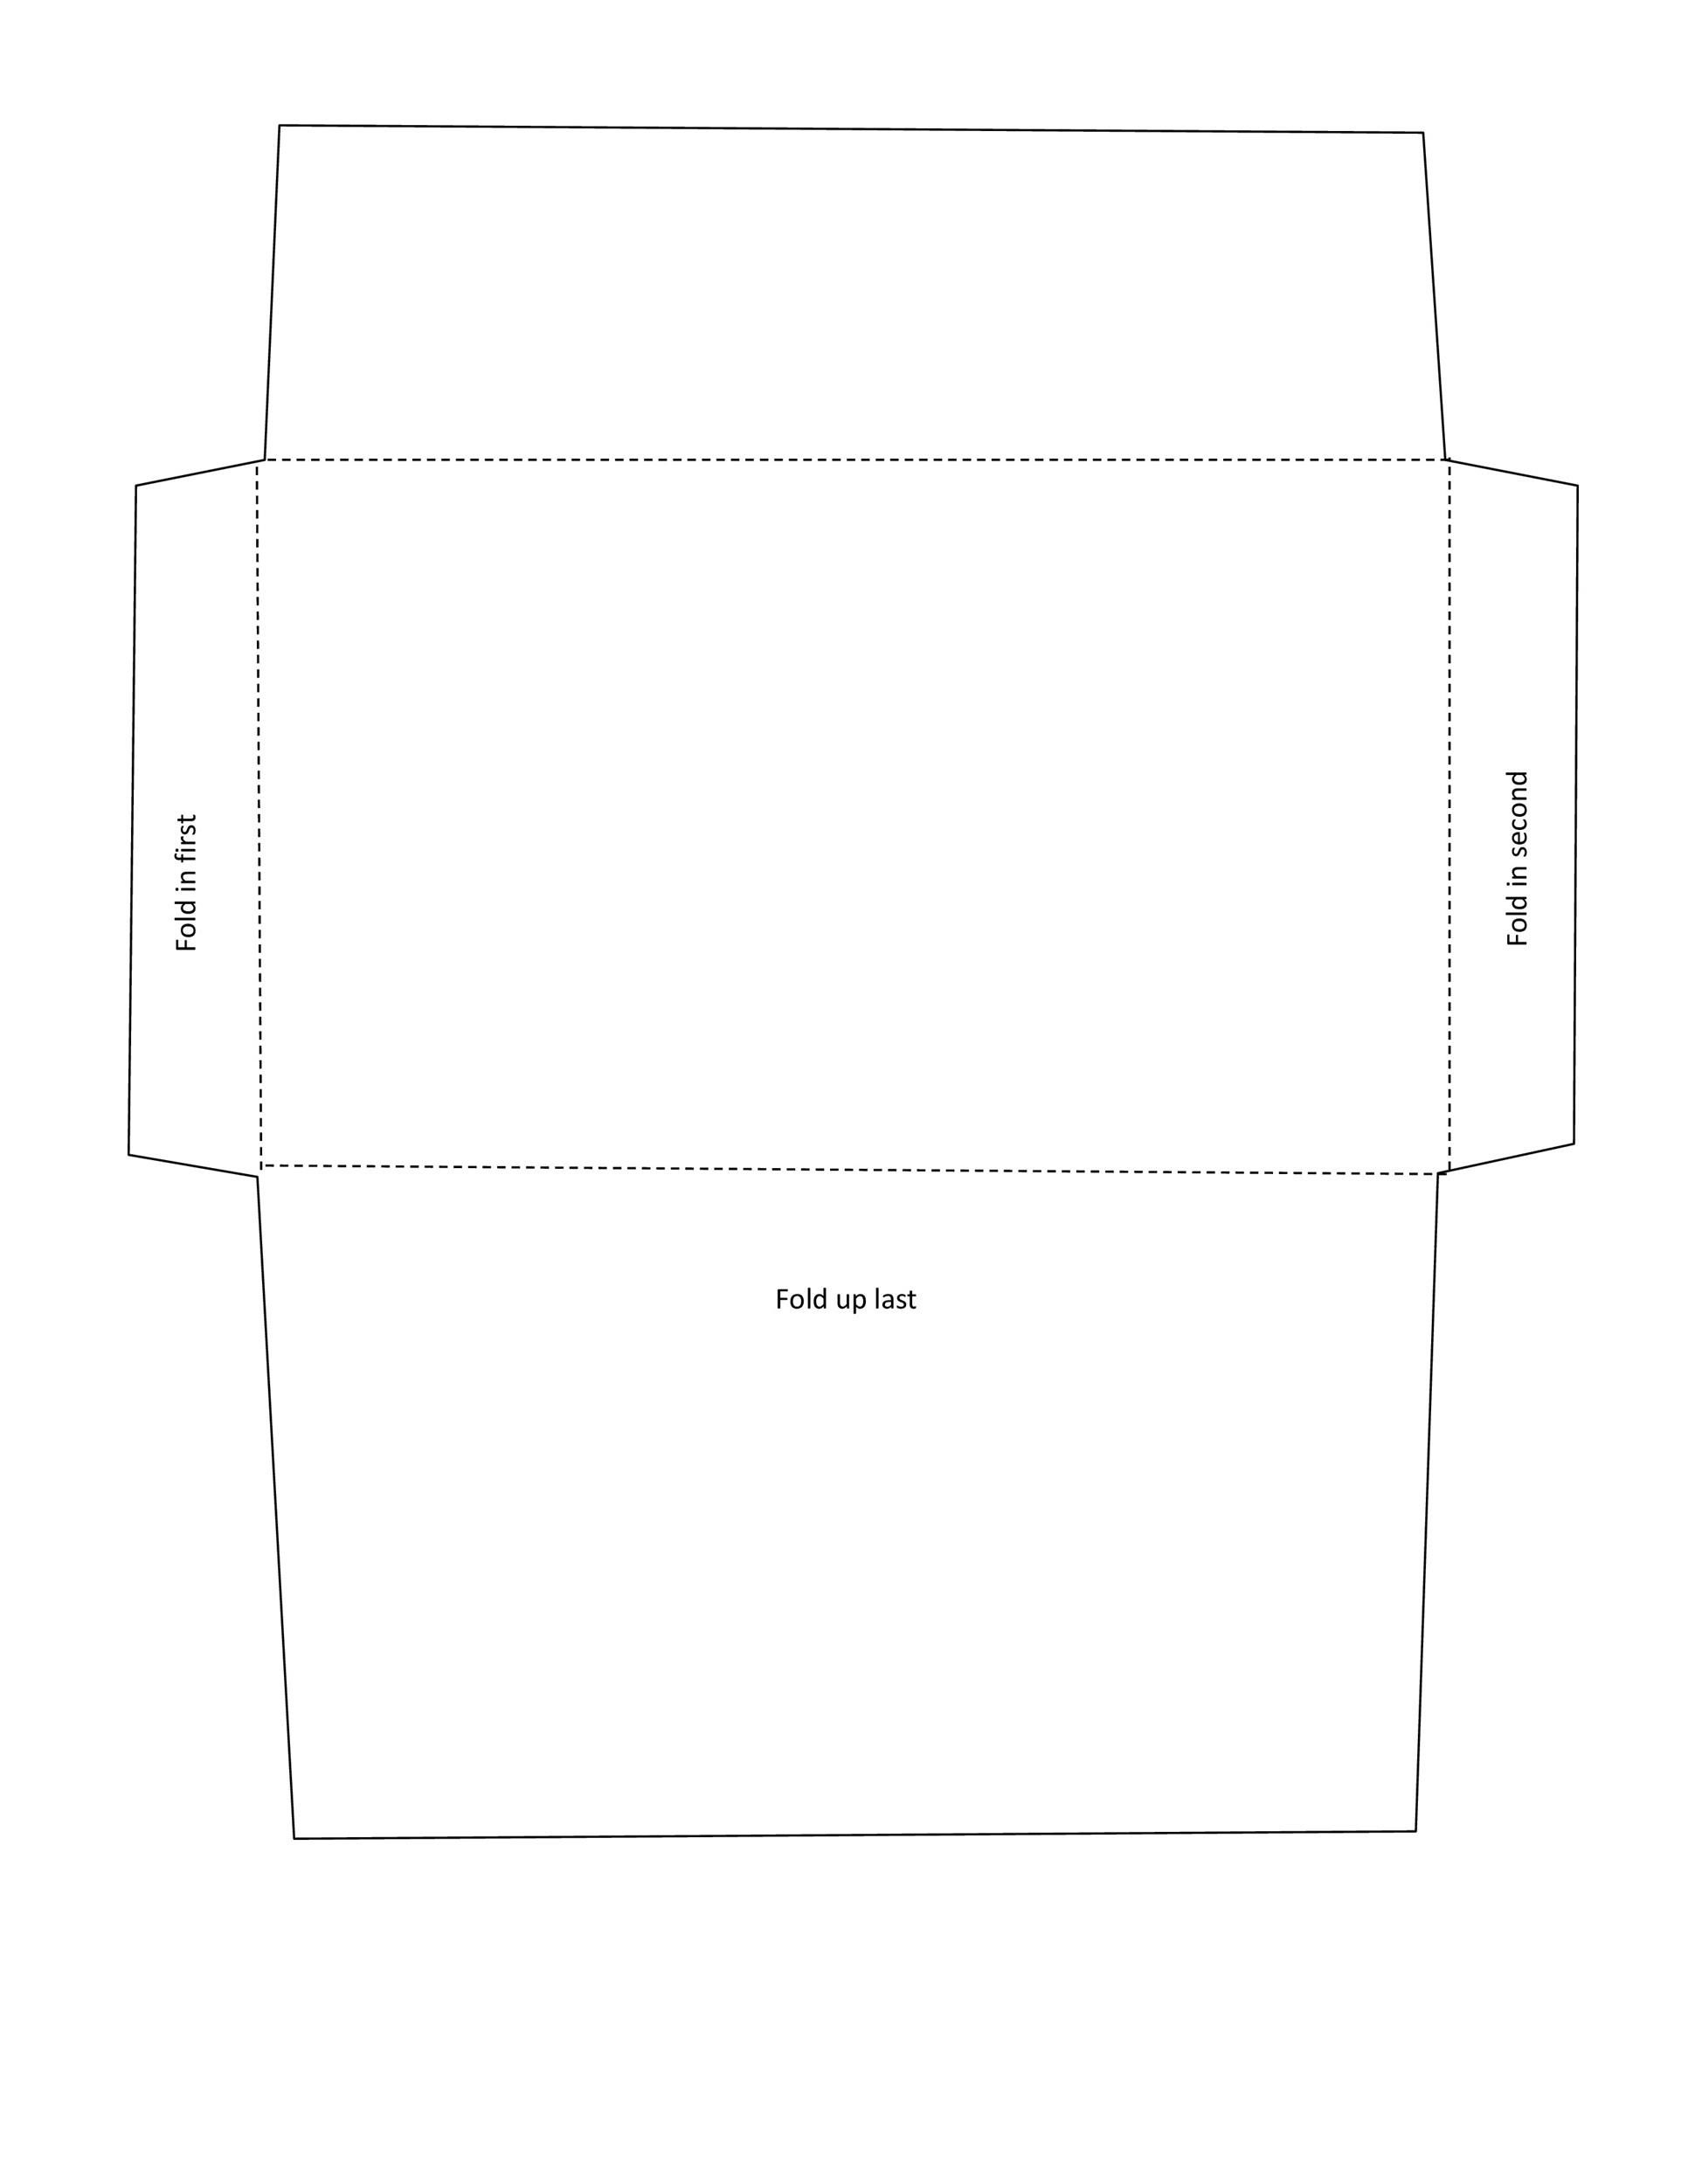 007 Awful Envelope Template For Word High Definition  Avery A7 5x7 MicrosoftFull